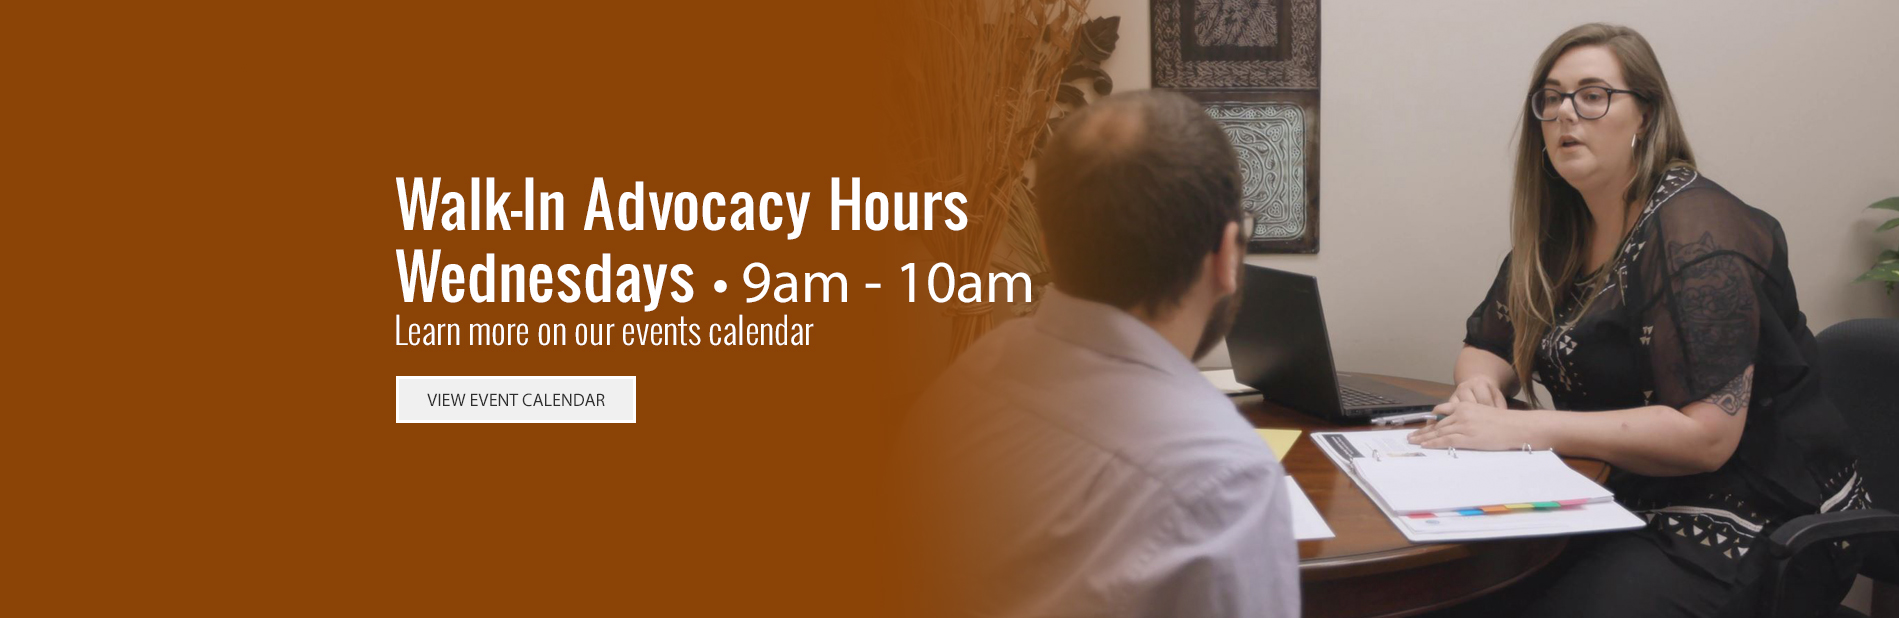 Walk-in Advocacy Hours - Wednesdays - 9am - 10am - Follow the link to learn more on our events calendar.